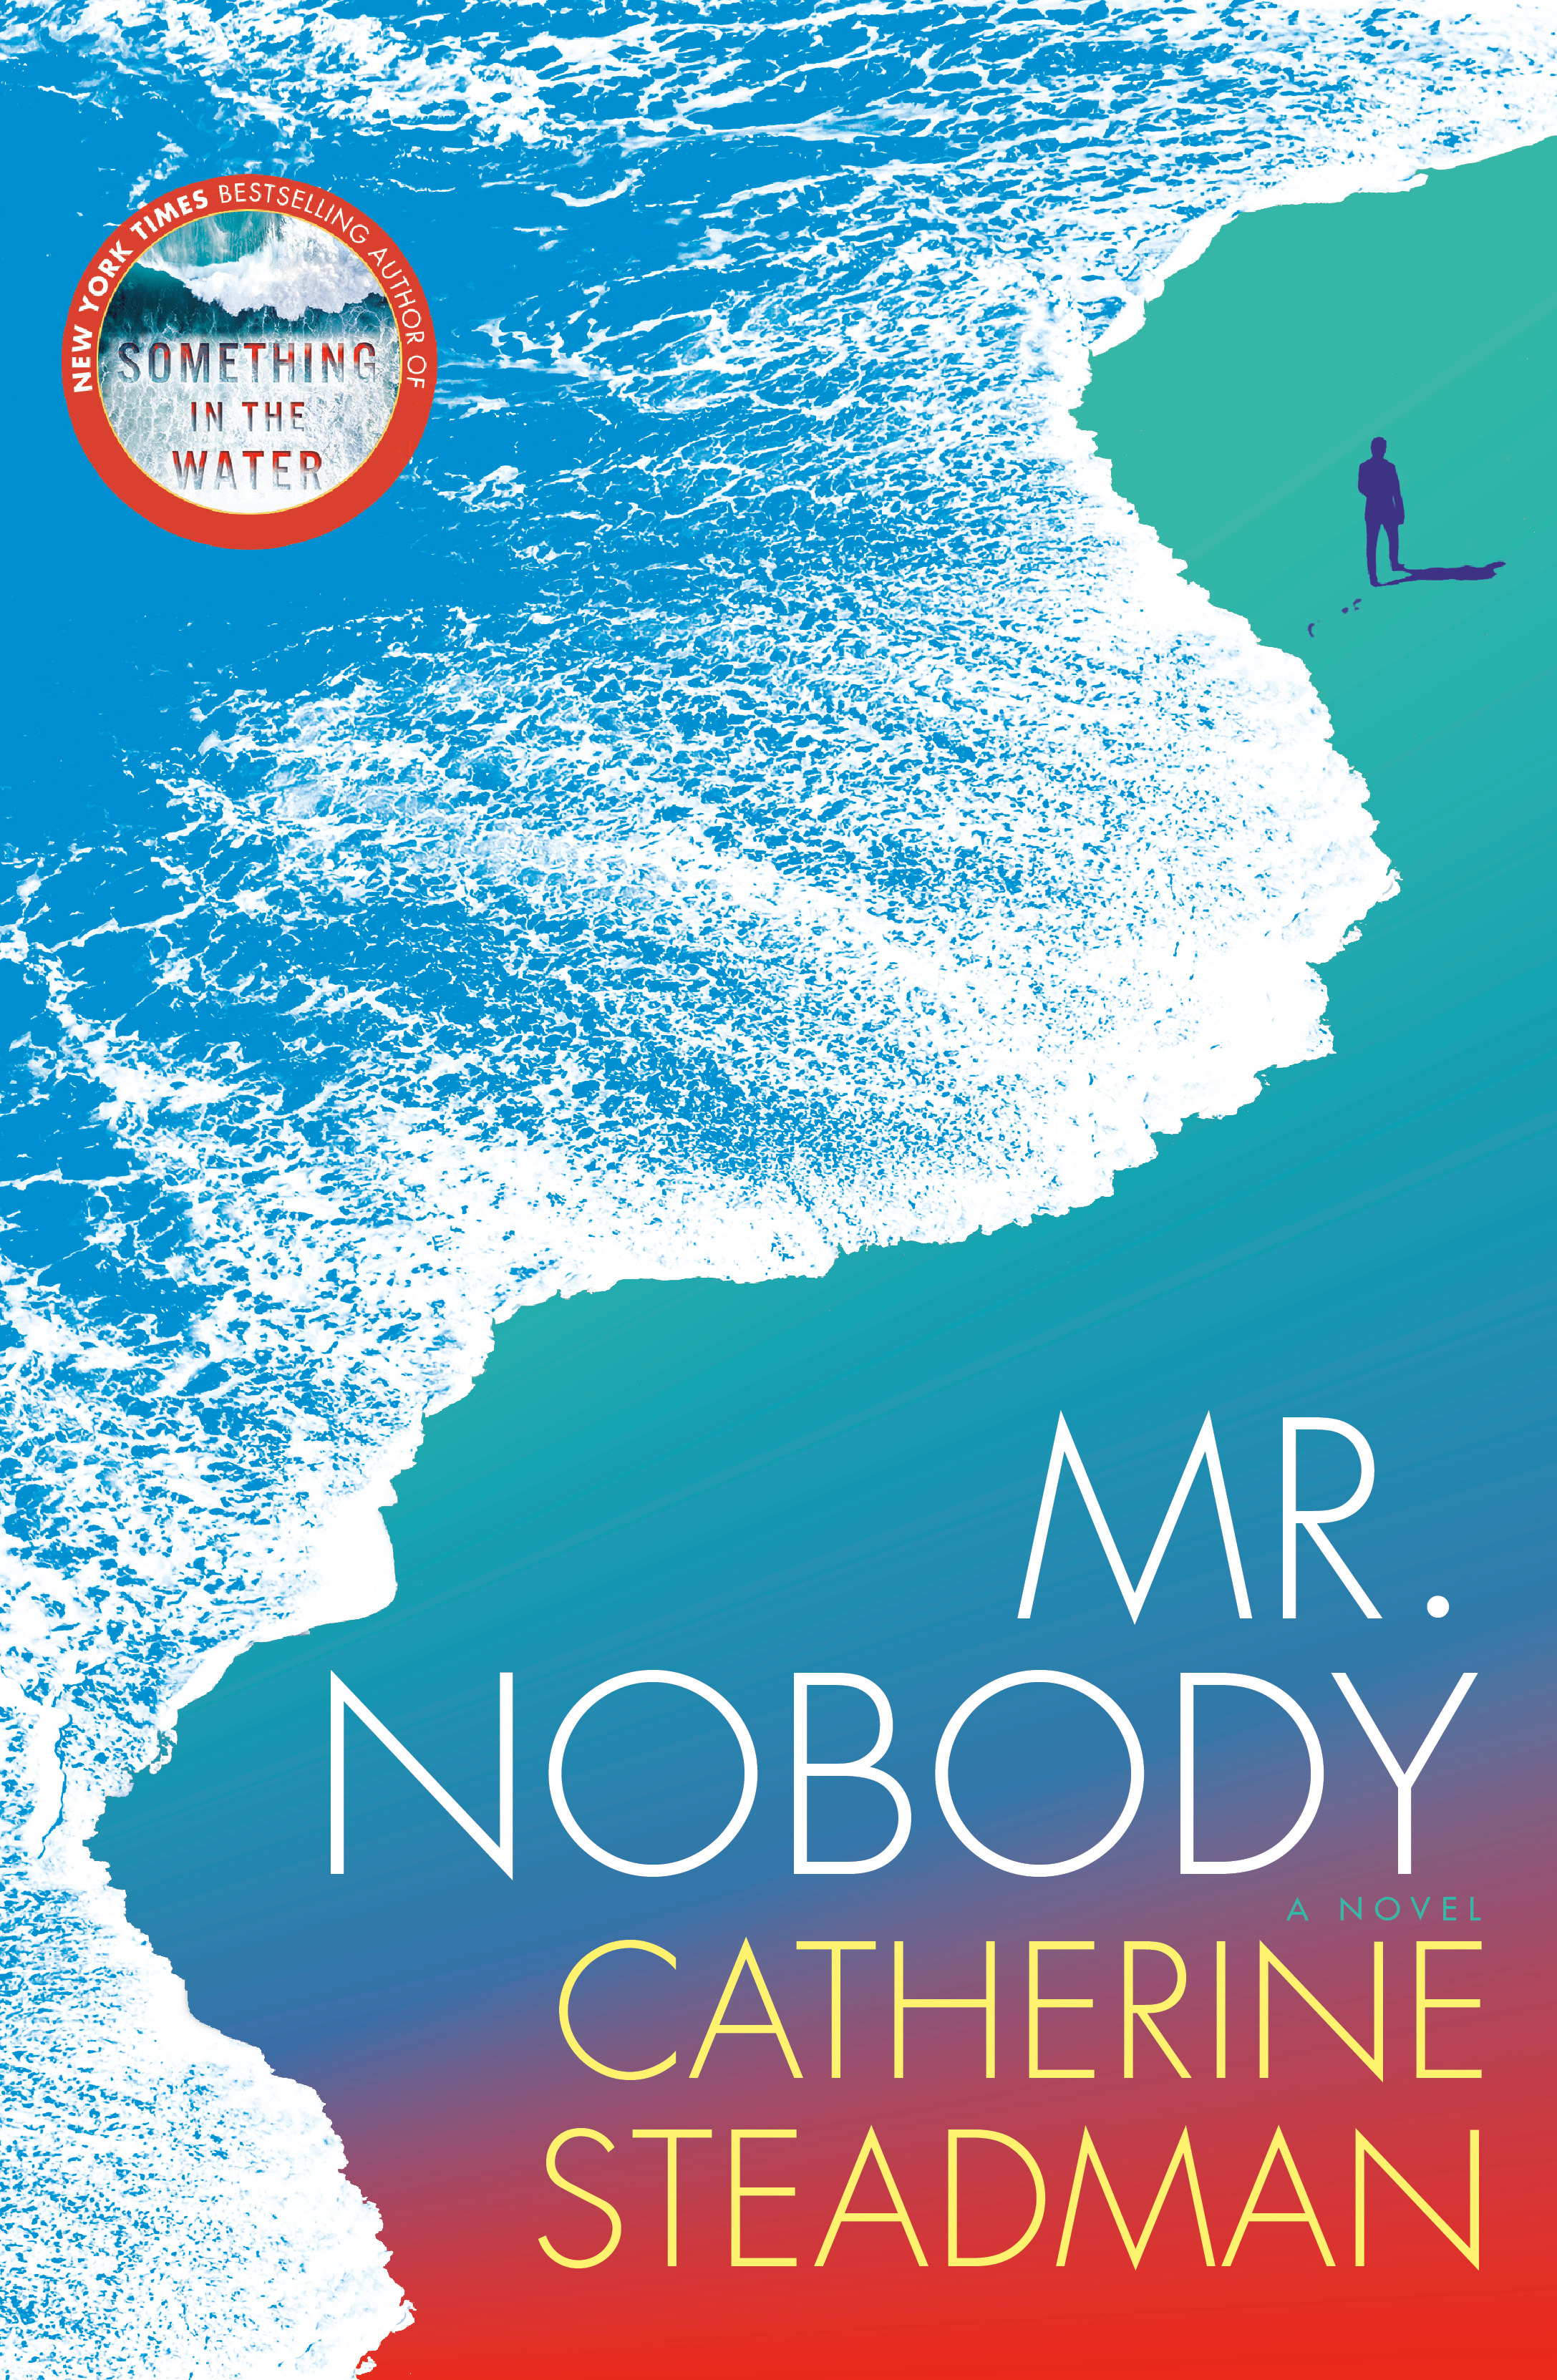 Mr. Nobody - Catherine Steadman